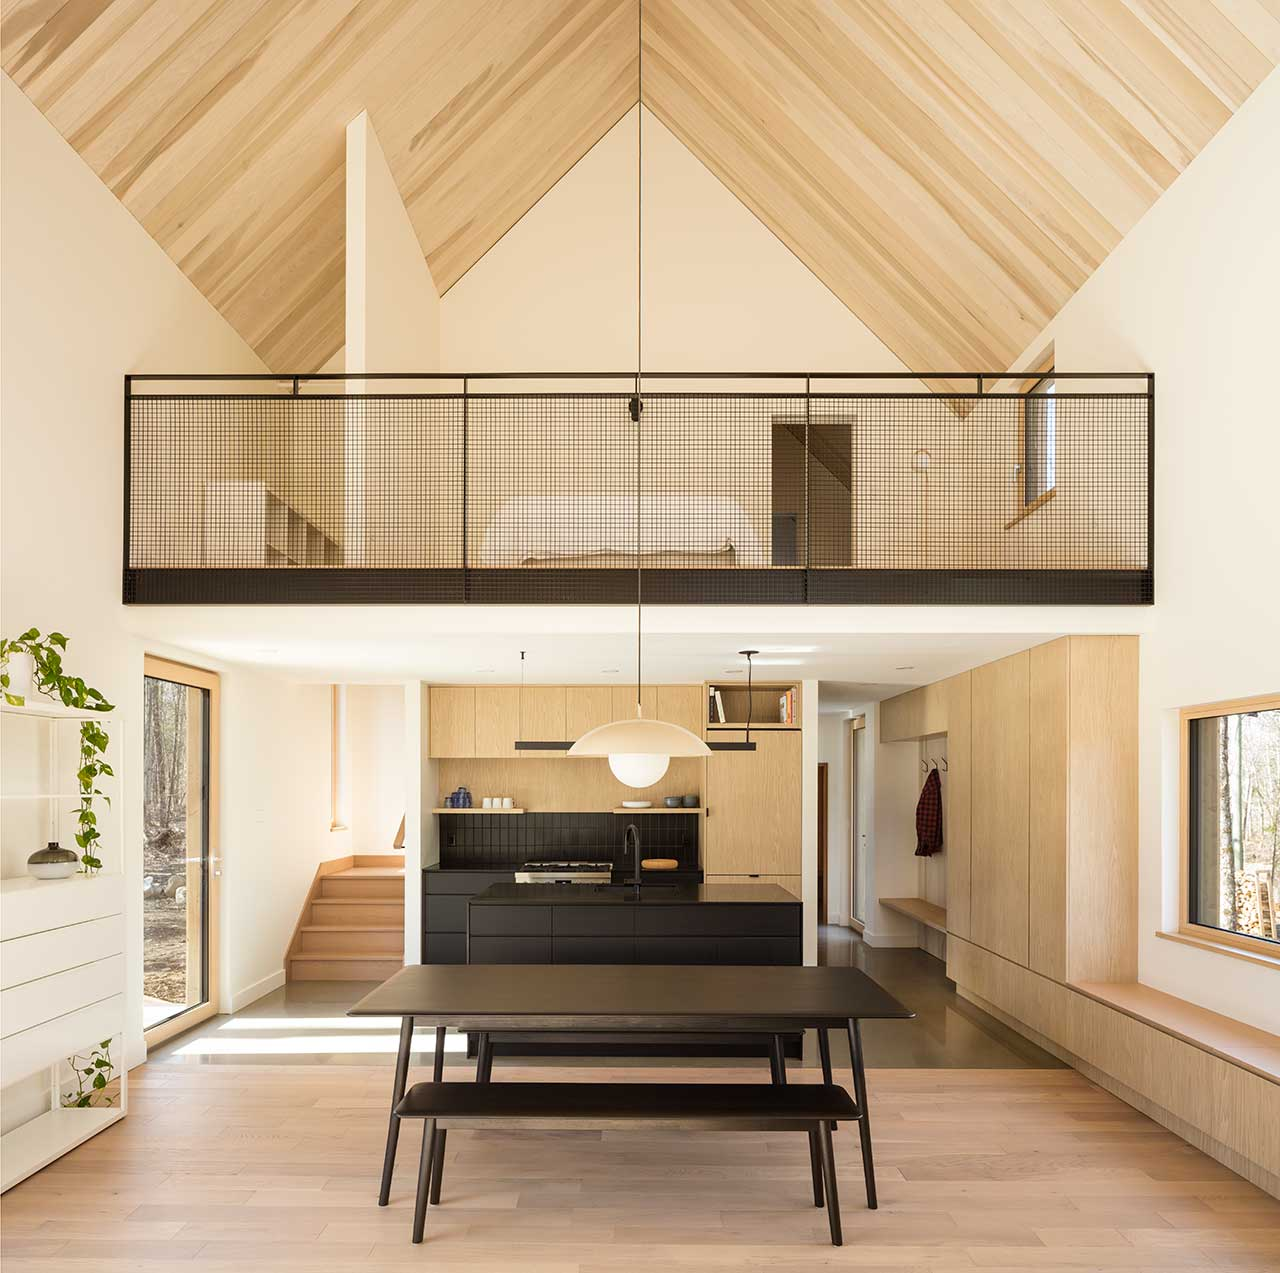 double-height modern living space of cabin with loft bedroom